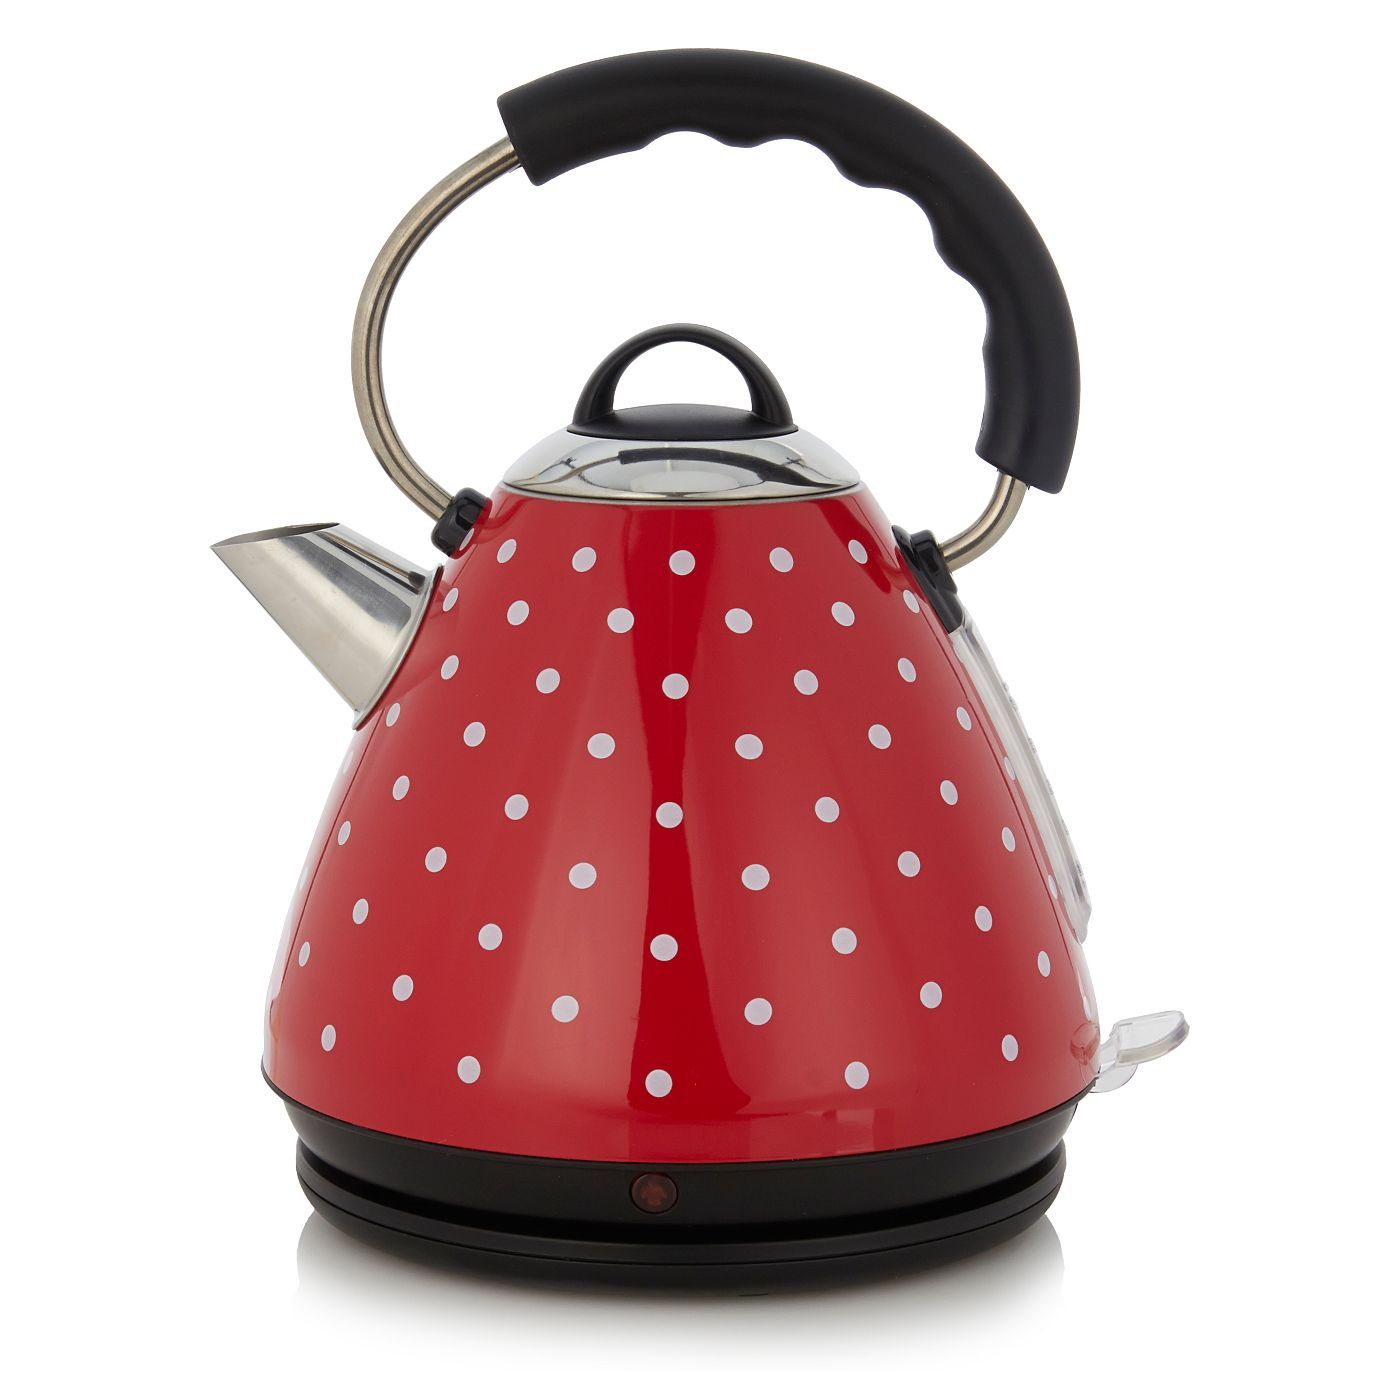 Küchengeräte Rot Weiß Gepunktet Polka Dot Kettle From George Home Polka Dot To Dots Kettle